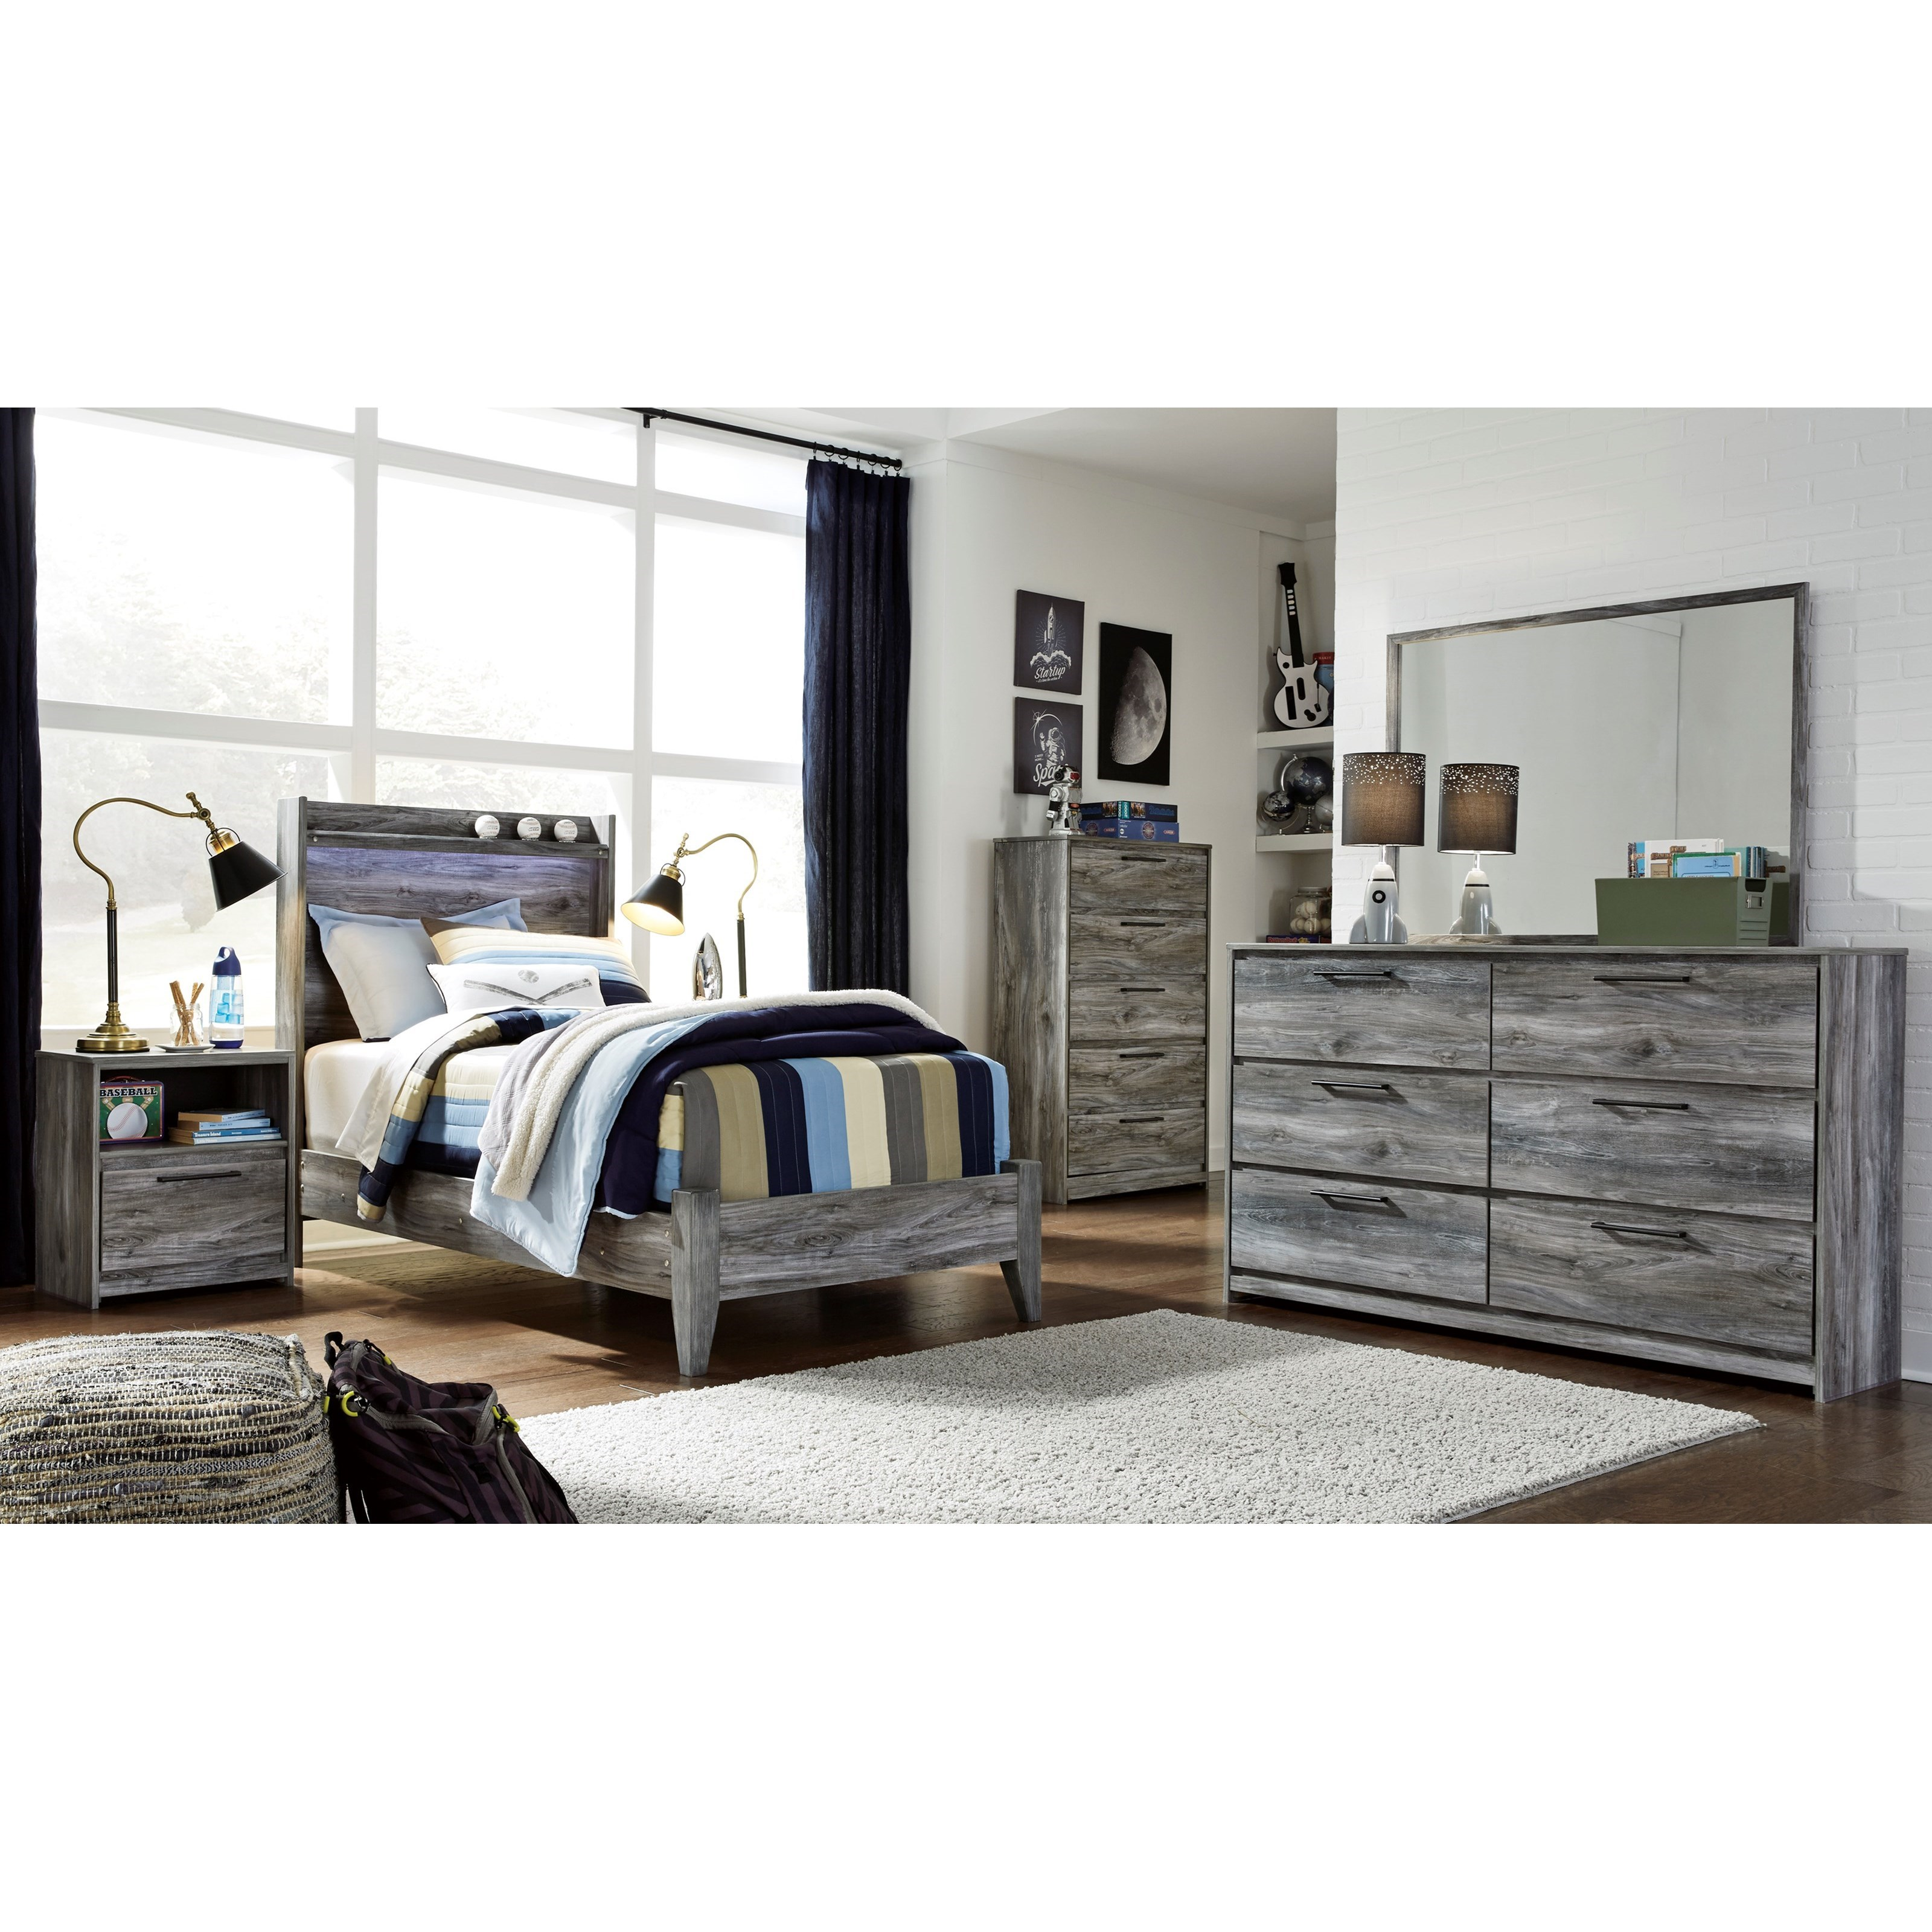 Baystorm Twin Bedroom Group by Signature Design by Ashley at Sparks HomeStore